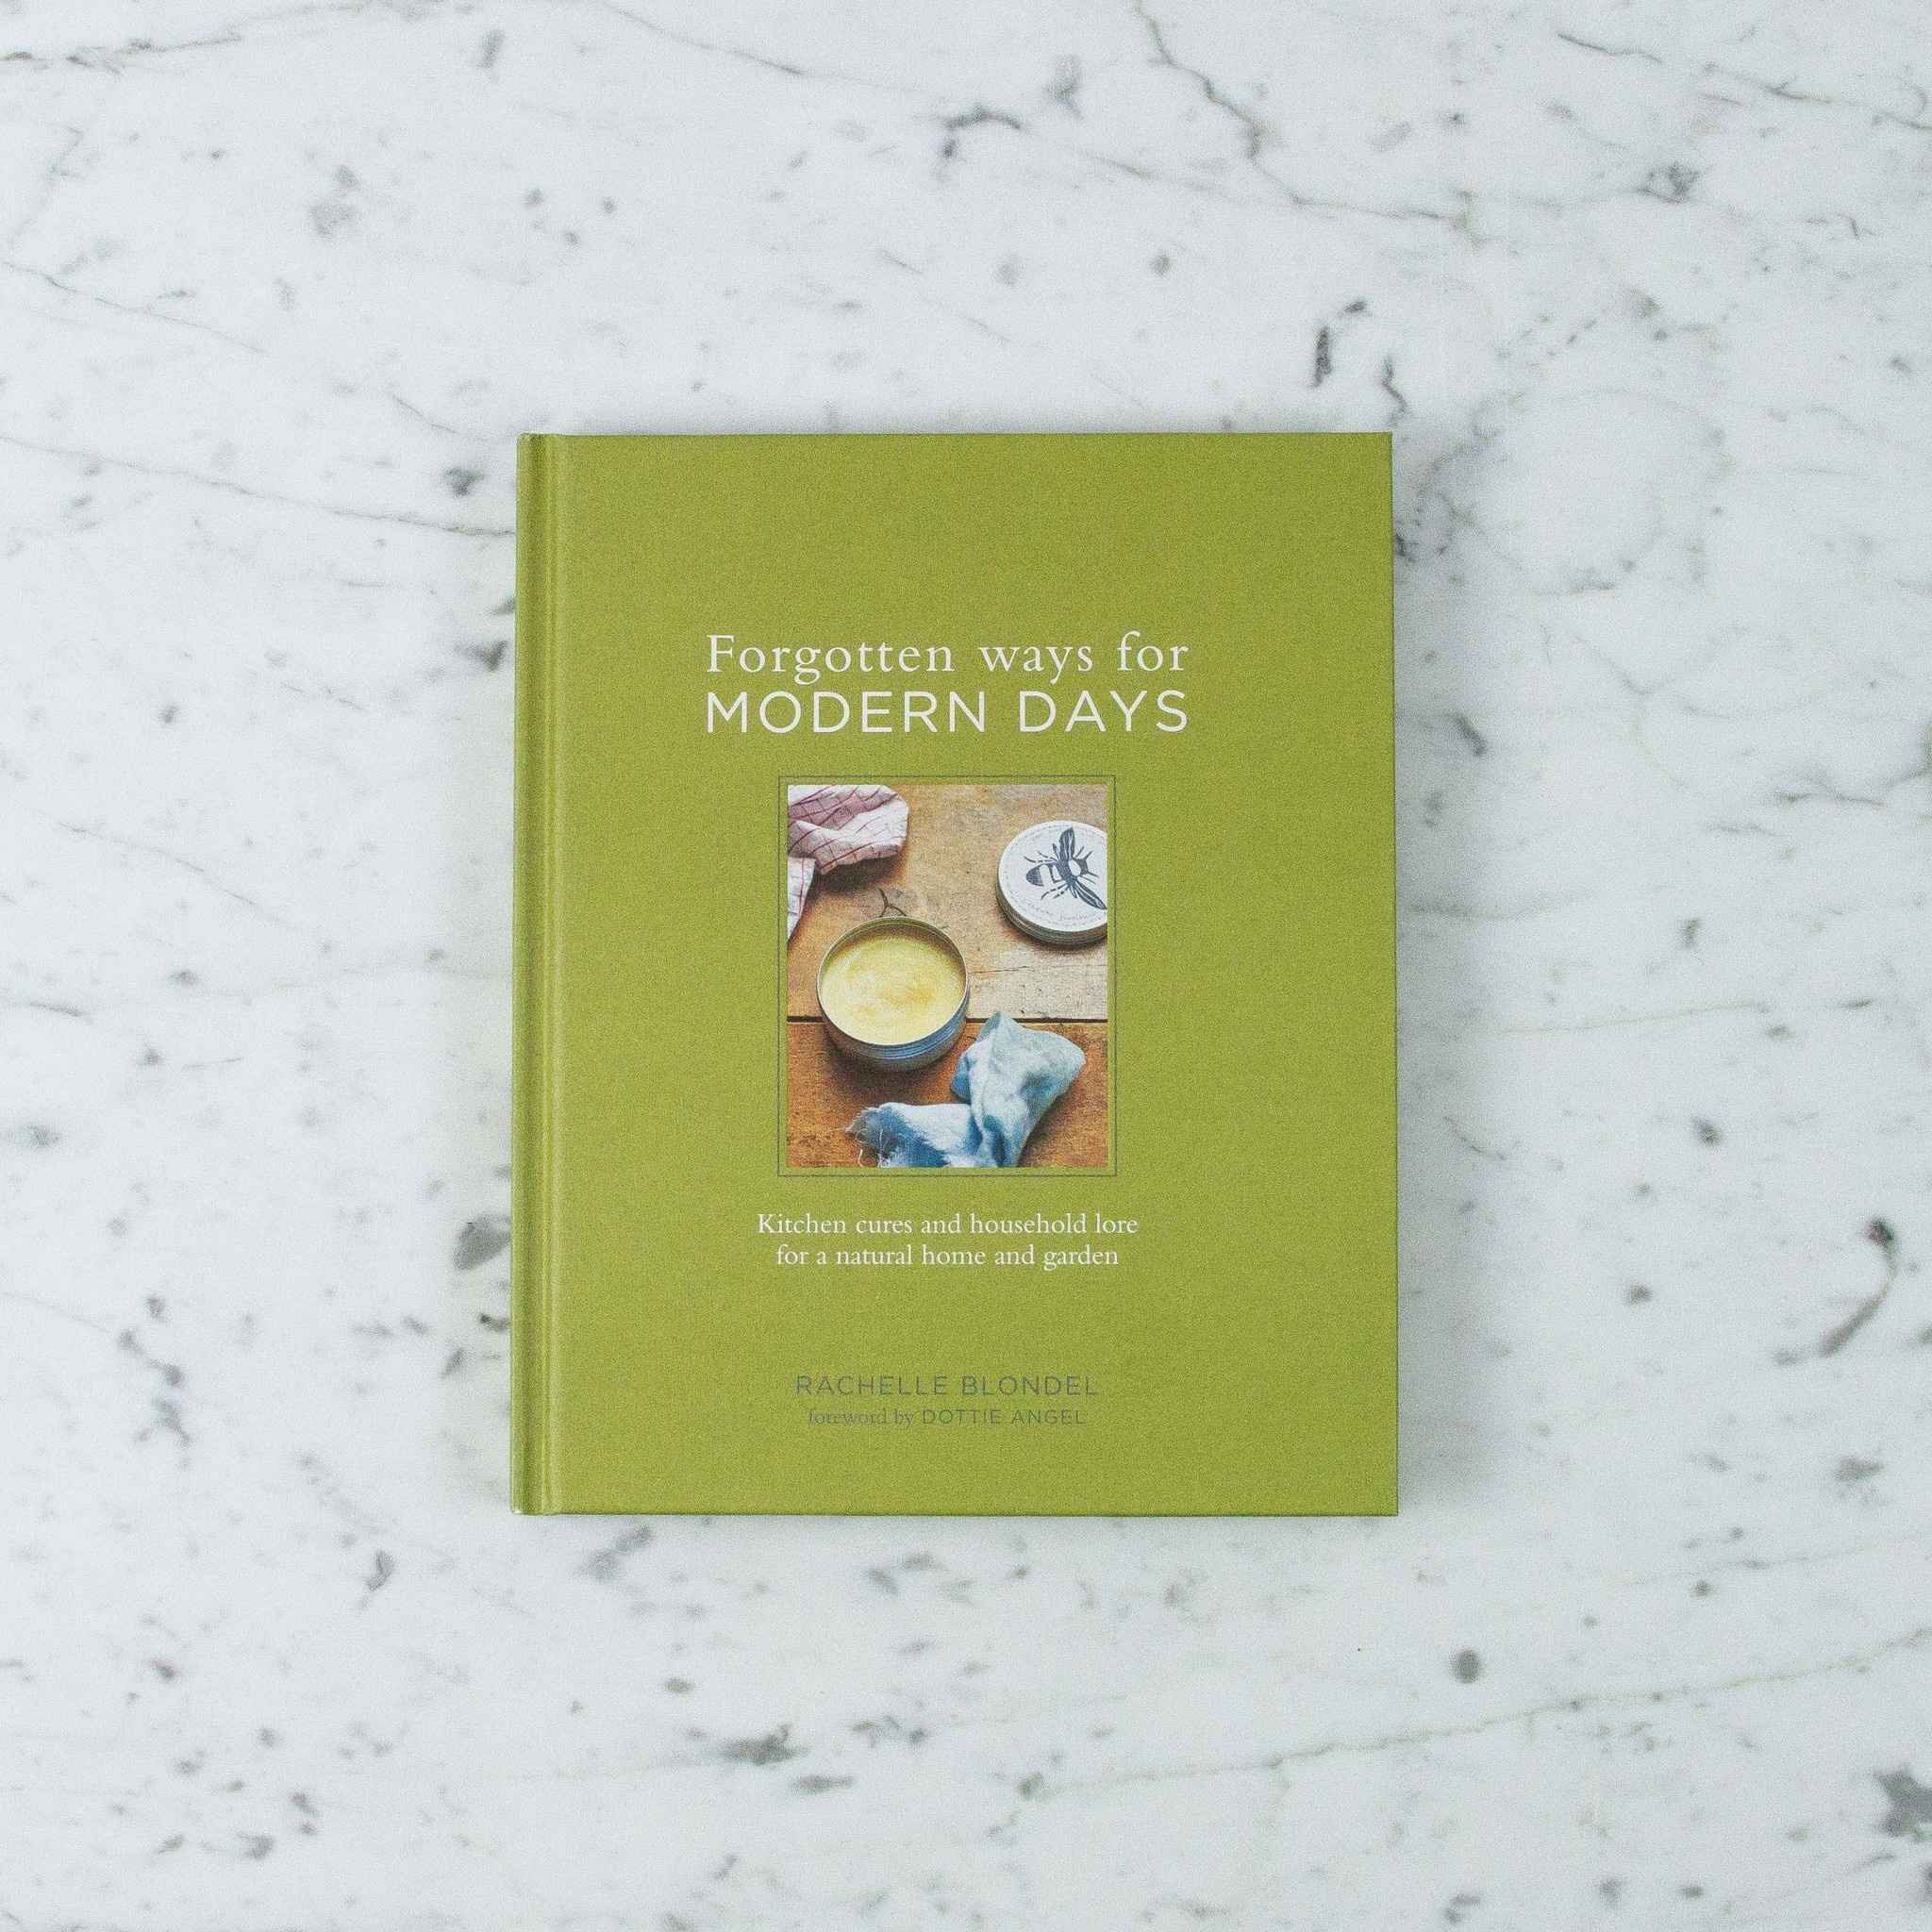 Forgotten Ways for Modern Days: Kitchen Cures and Household Lore for a Natural Home and Garden by Rachelle Blondel